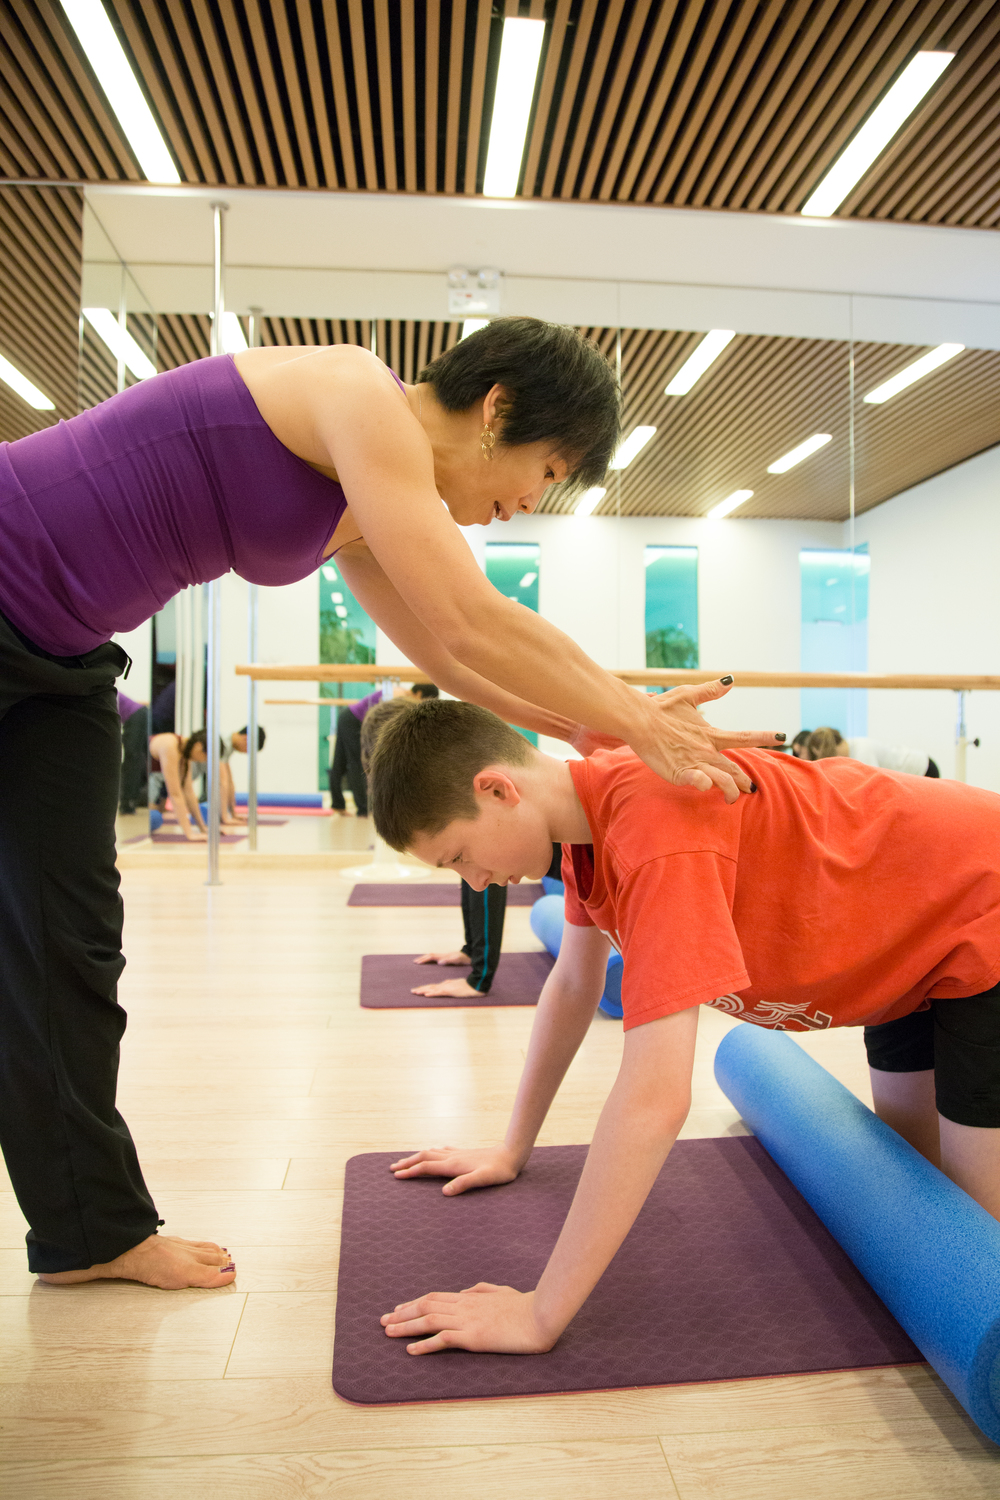 Kids_Playing_Pilates_21_SerenaXuNing.jpg